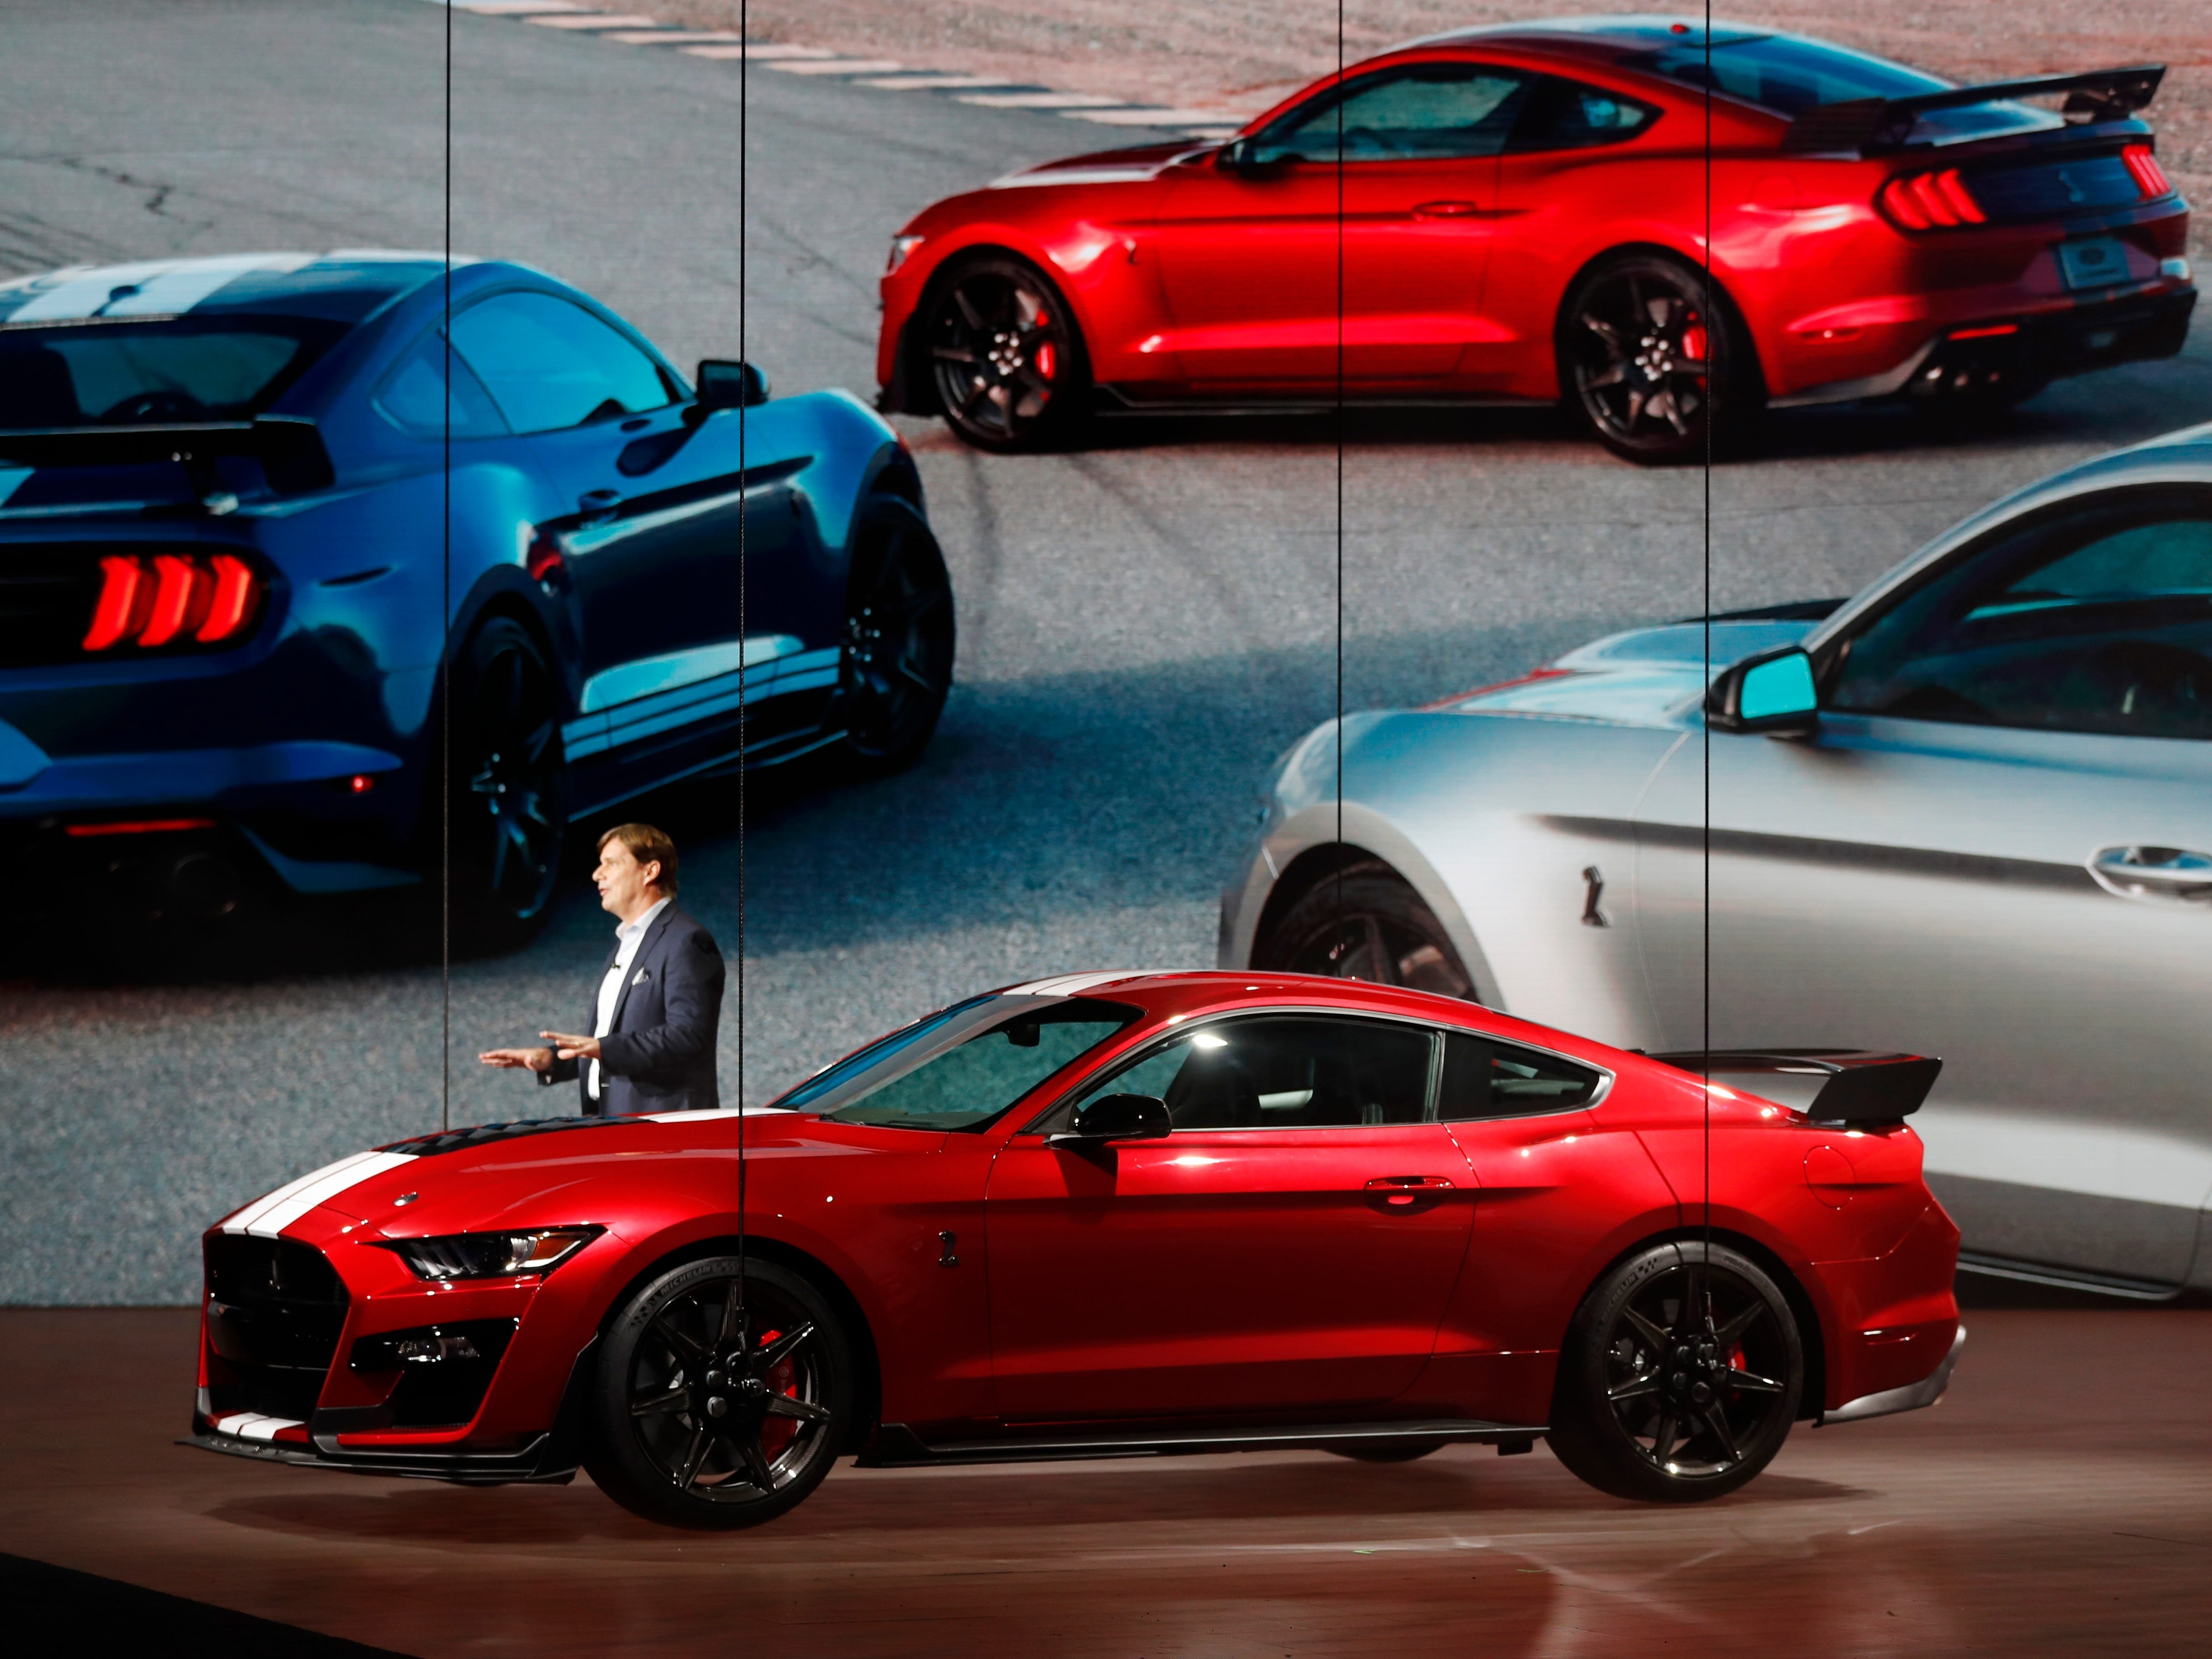 Ford Motor Company's Executive Vice President and president, Global Markets, Jim Farley introduces the 2020 Ford Mustang Shelby GT500.